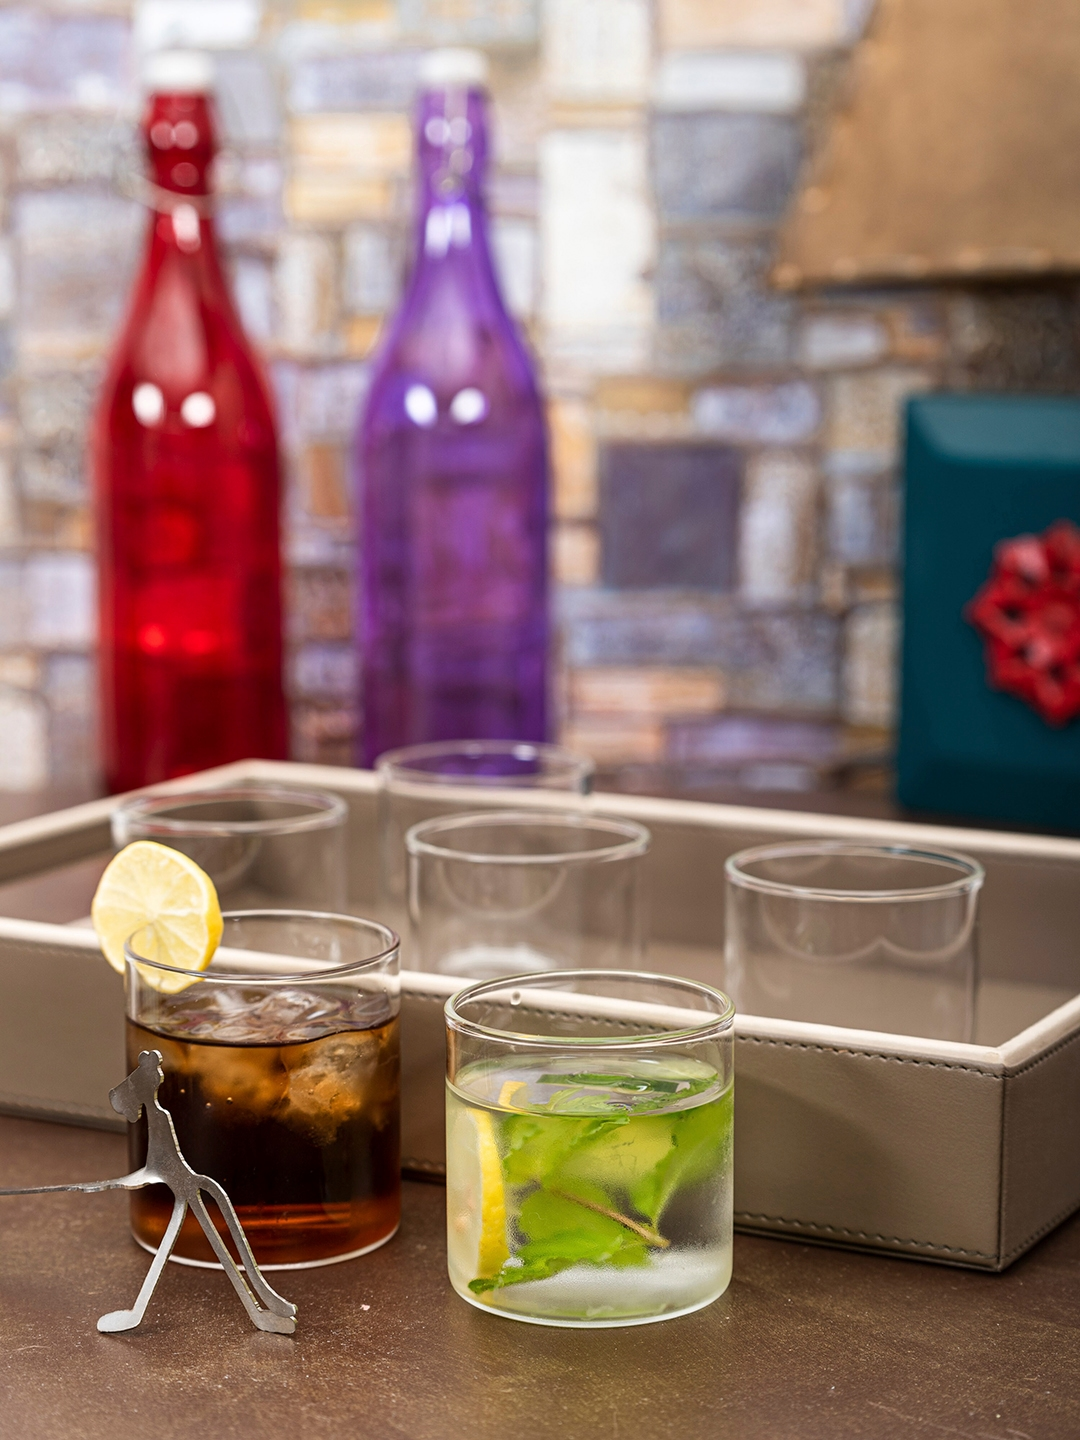 ROXX Transparent Set of 6 Glass Tumbler